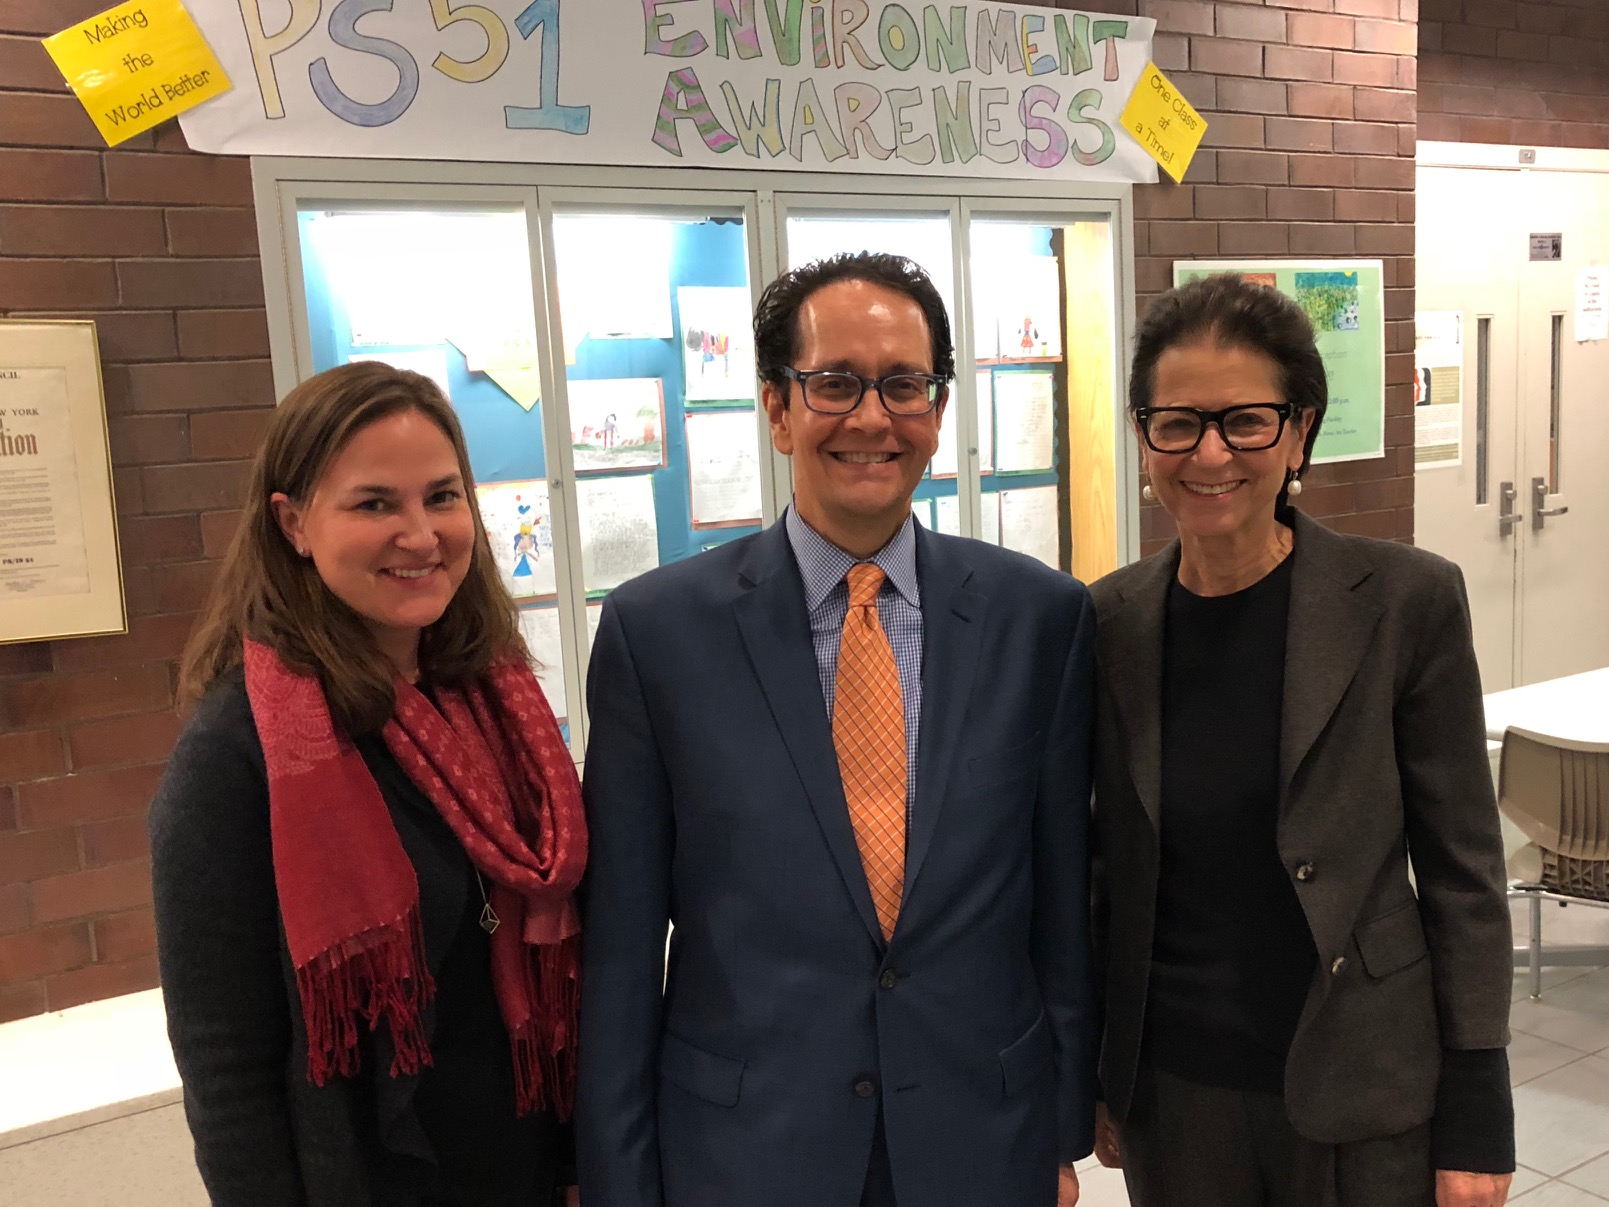 Kate Alcorn from The Fund, Paul King from the DOE Office of Arts & Special Projects, and major arts supporter Jody Gottfried Arnhold.